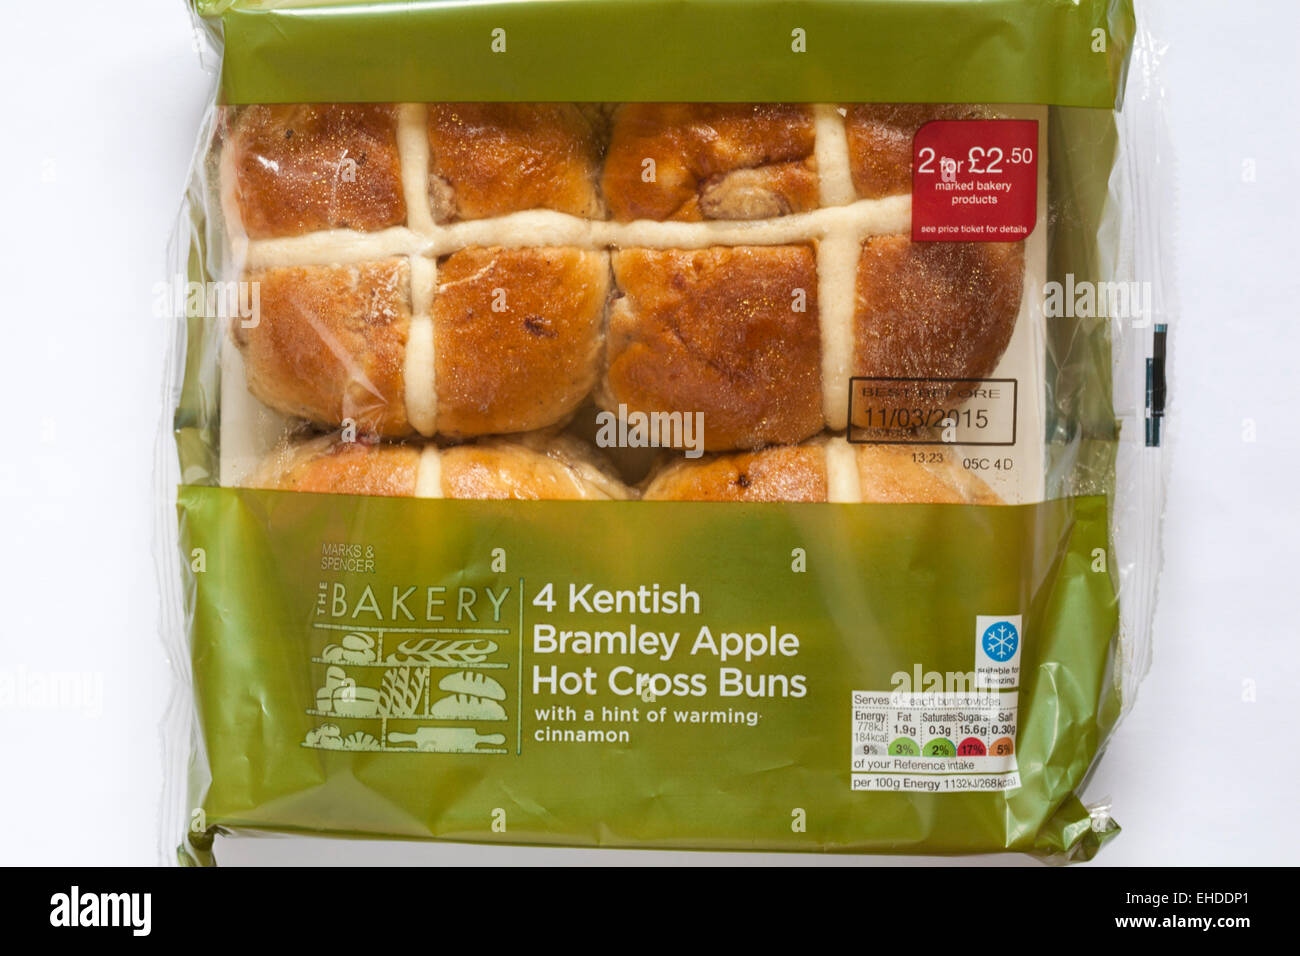 packet of Marks & Spencer 4 Kentish Bramley Apple Hot Cross Buns with a hint of warming cinnamon ready for Easter - Stock Image